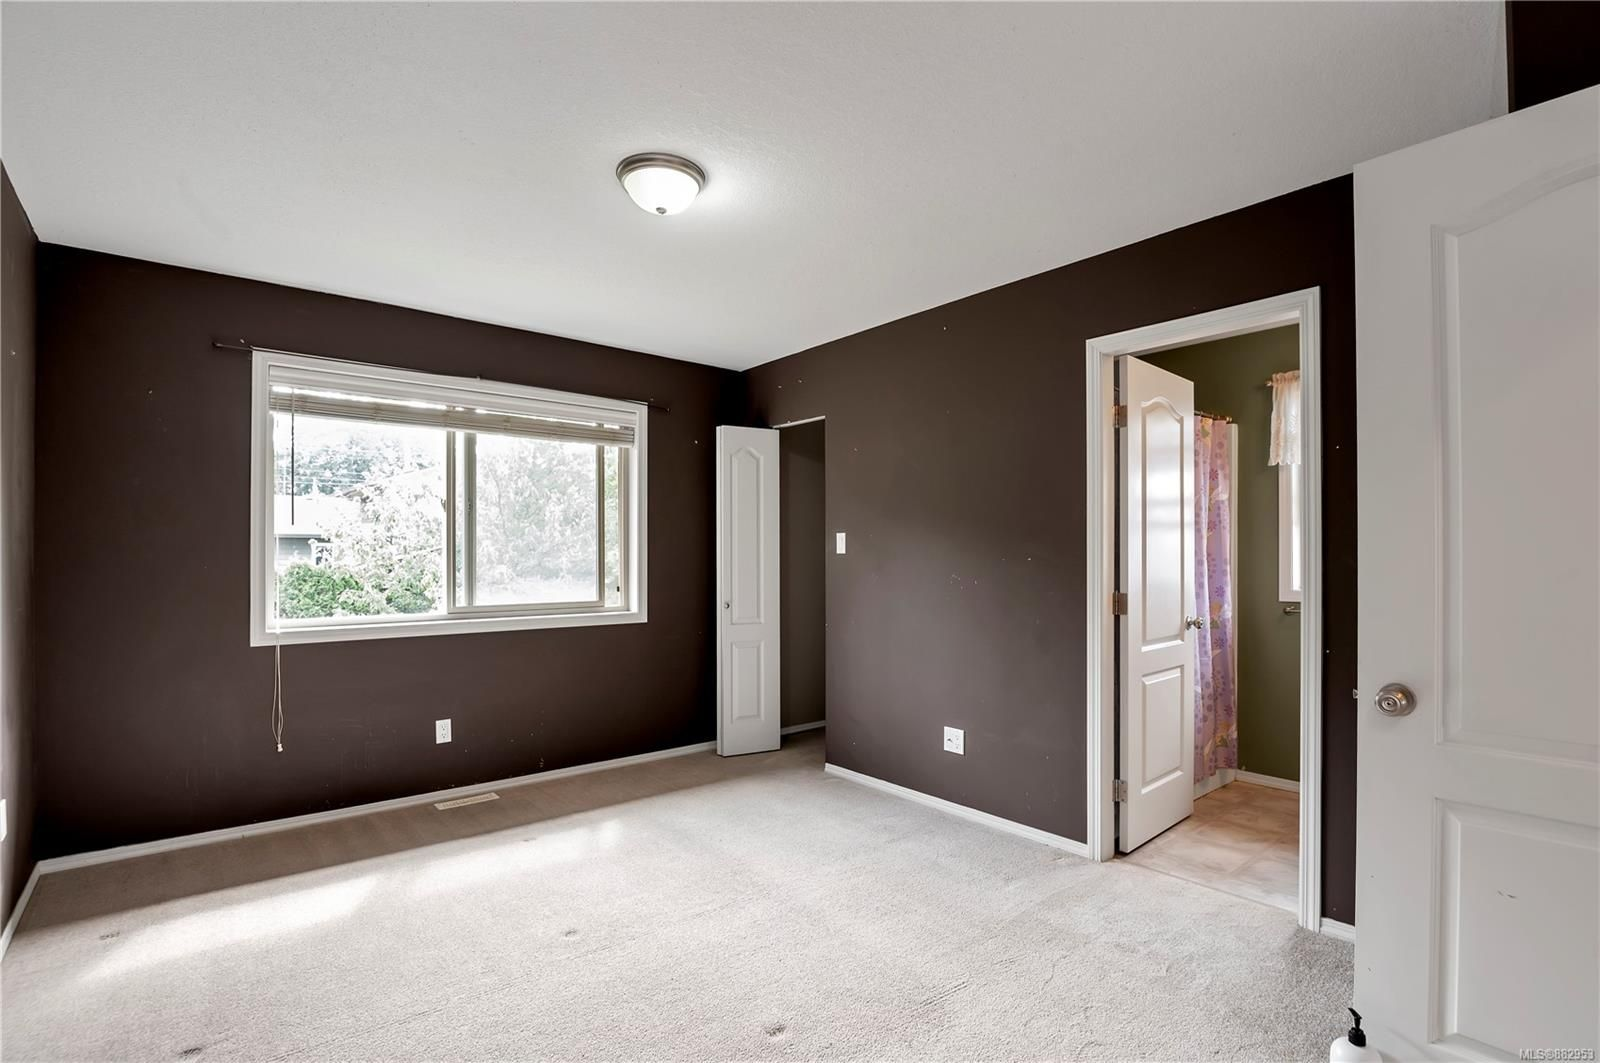 Photo 23: Photos: 732 Oribi Dr in : CR Campbell River Central House for sale (Campbell River)  : MLS®# 882953